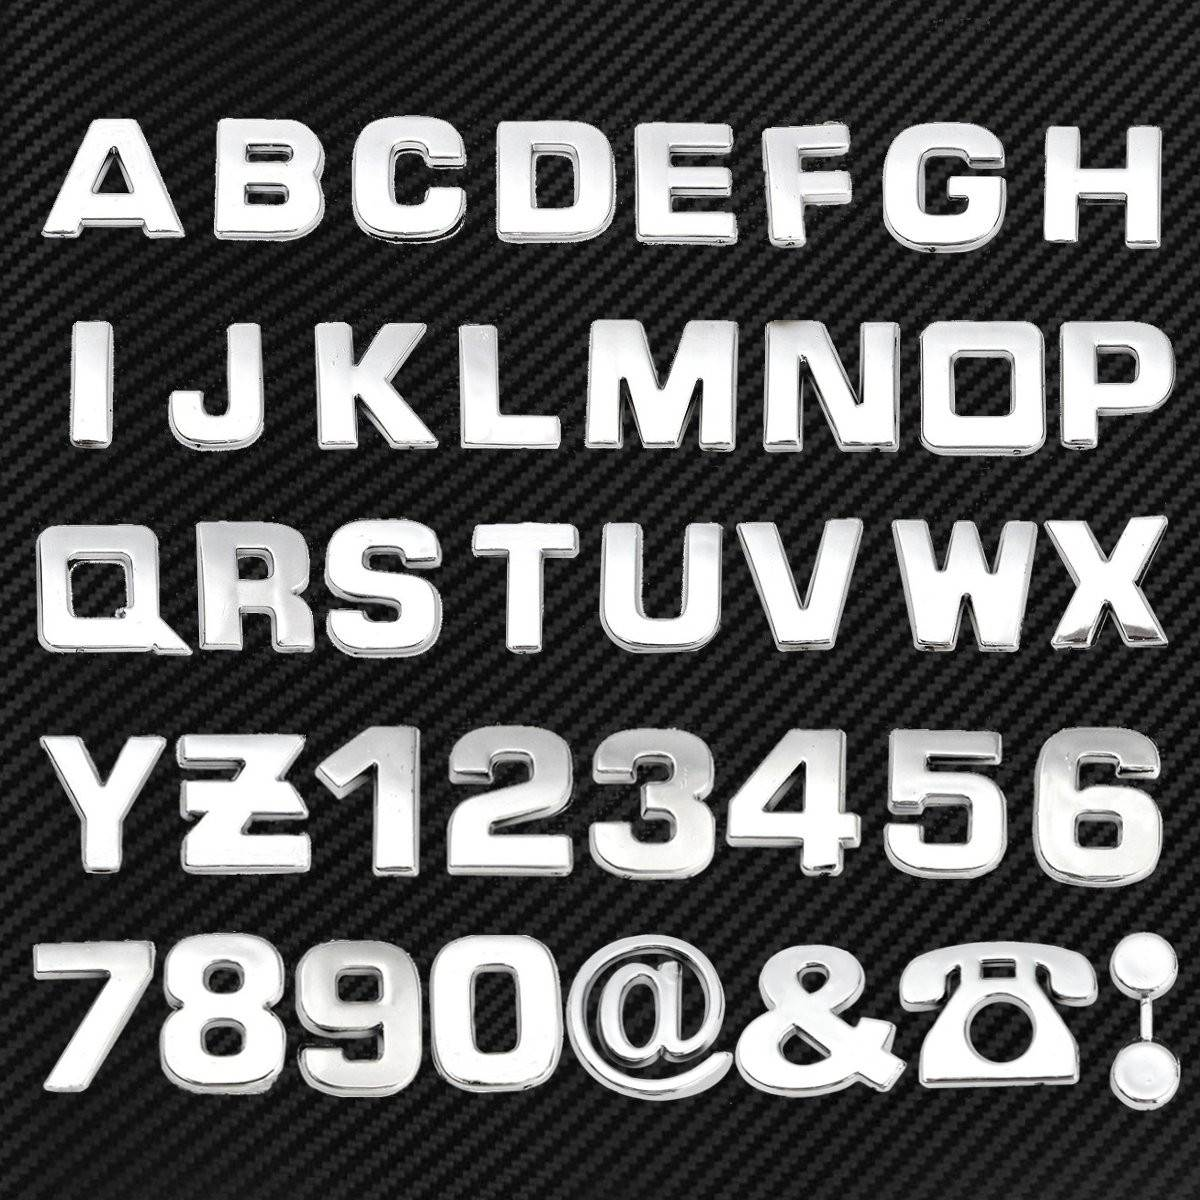 Us 45 40pcs 3d Diy Chrome Abs Metallic Metal Alphabet Letter Number Stickers Car Emblem Letter Badge Symbol Decal Car Styling In Car Stickers From